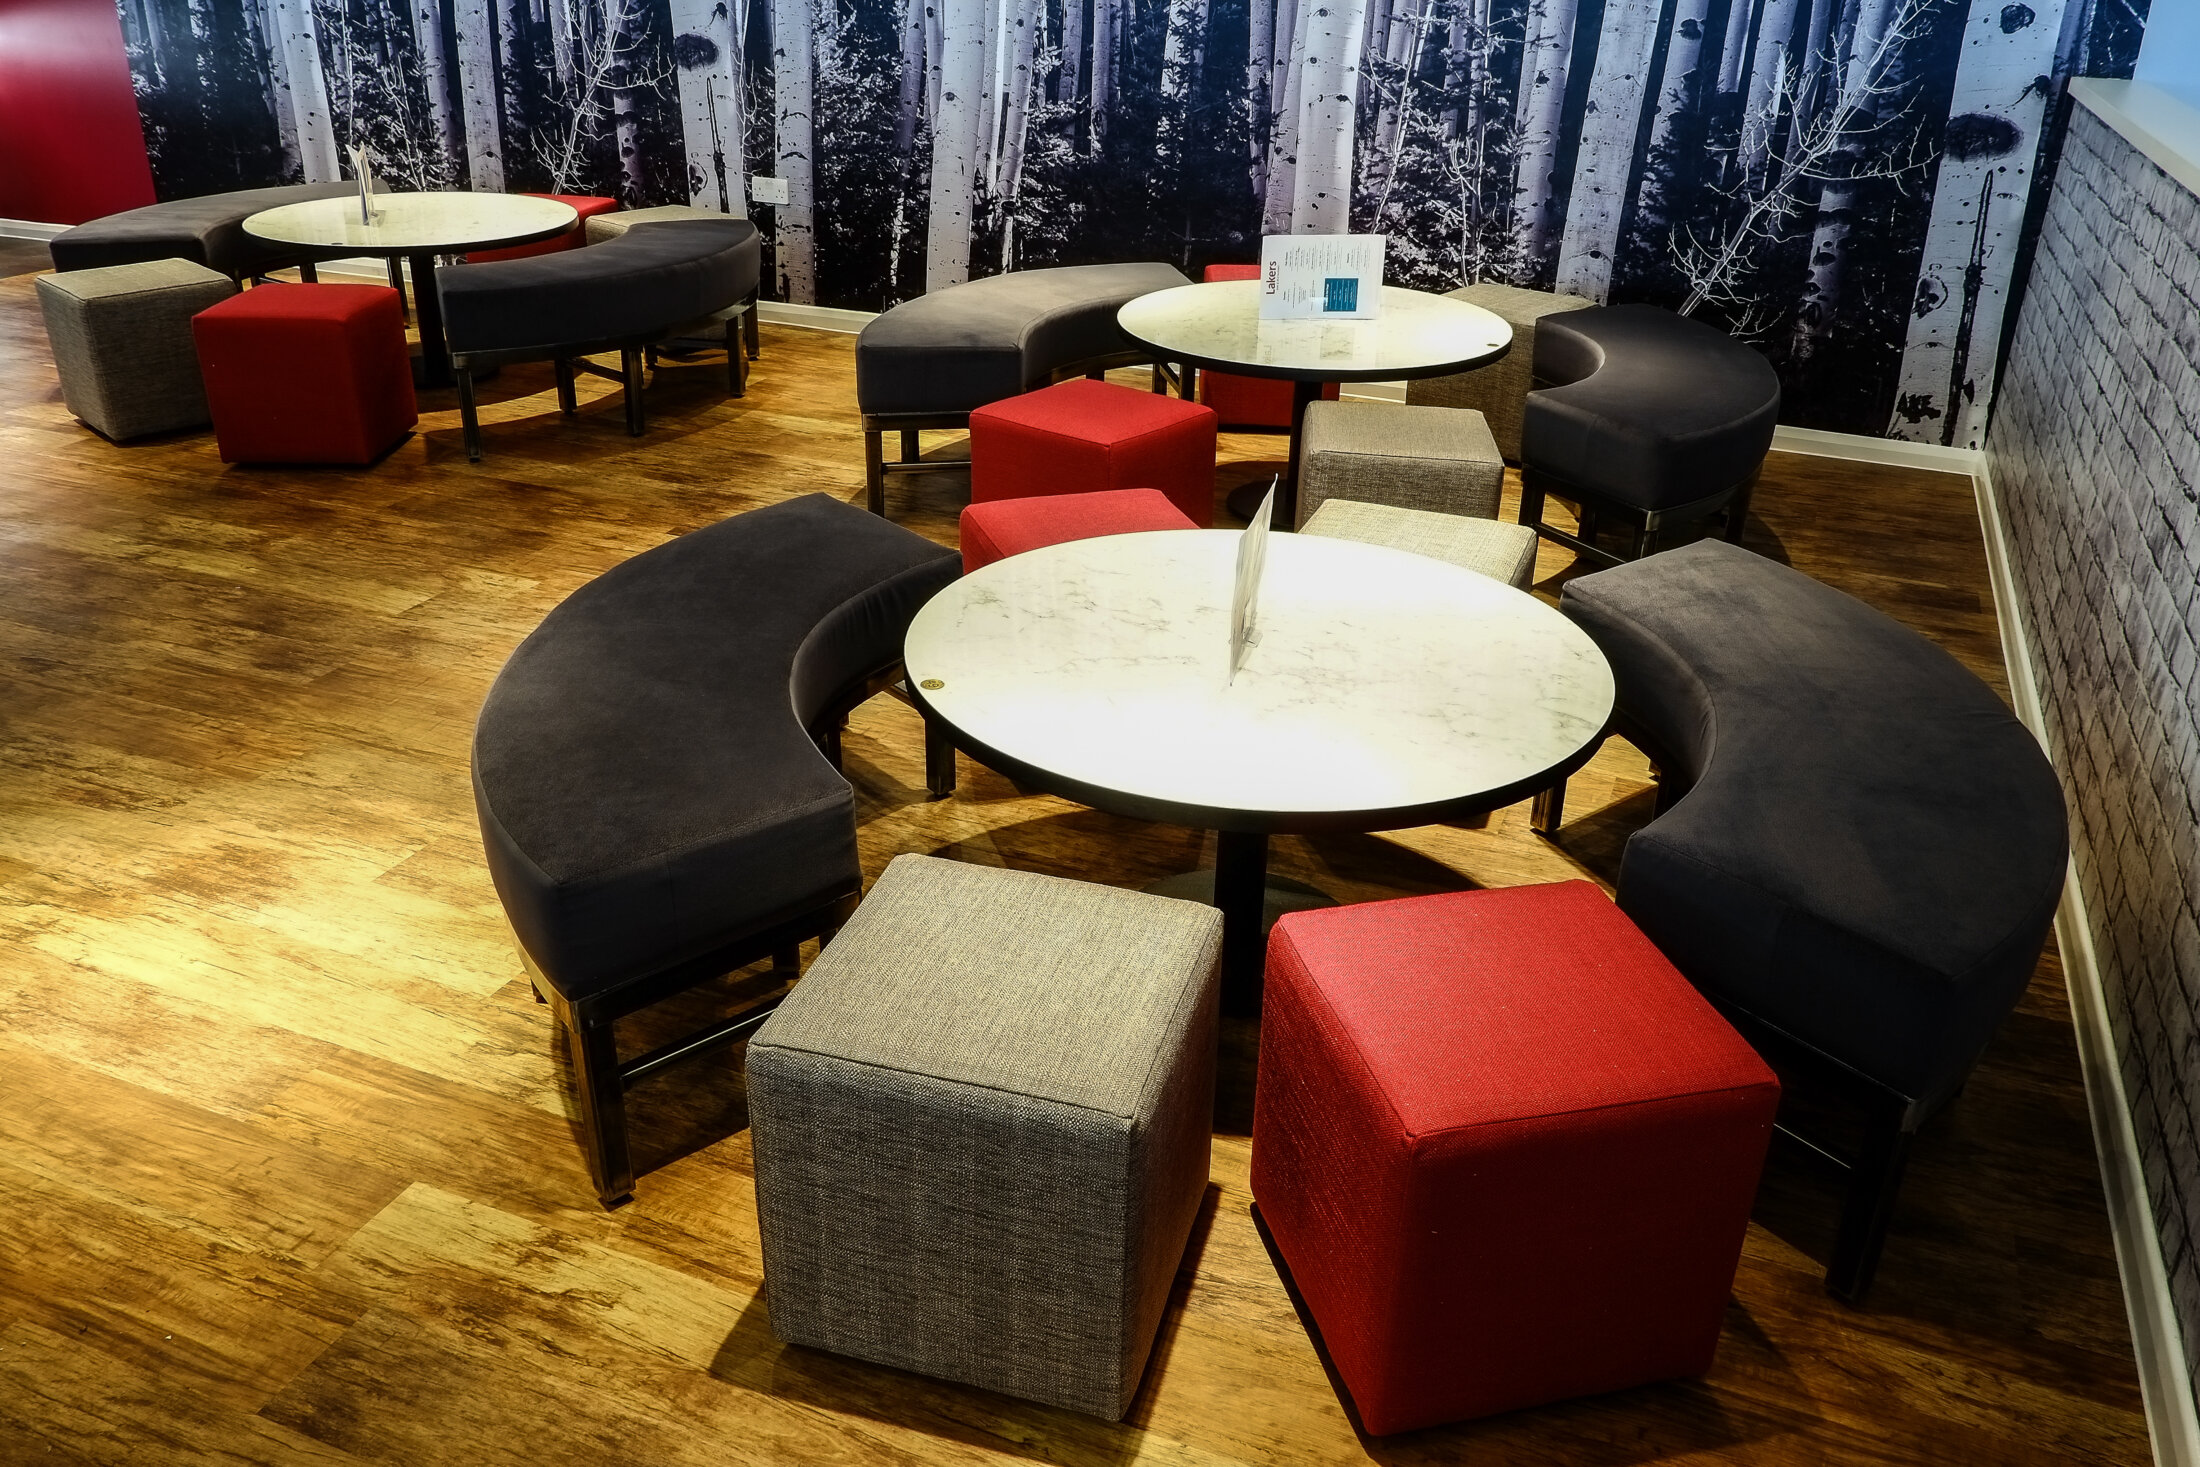 View Modular Seating & Ottomans category